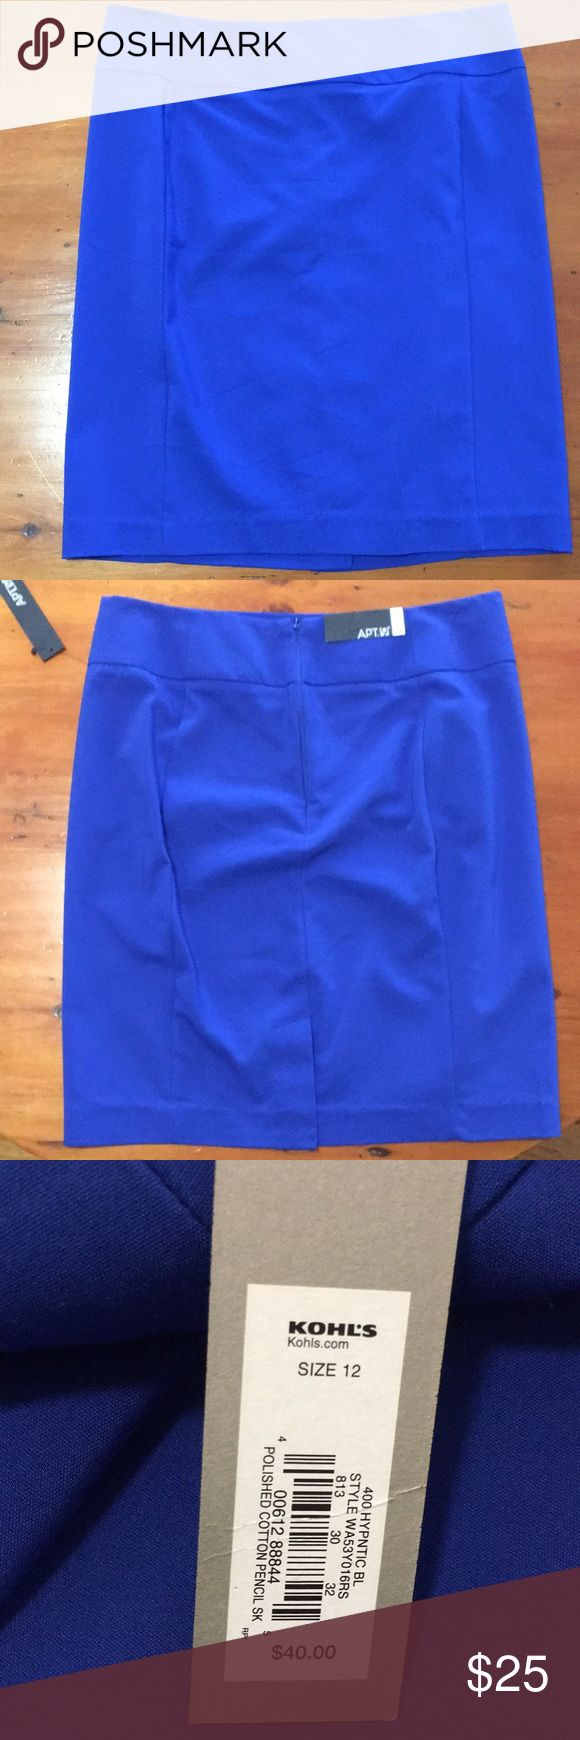 Blue pencil skirt Royal blue pencil skirt size 12. Fits true to size and hits right at the knee. Has a discrete back zipper. Never been worn!! Apt. 9 Skirts Pencil